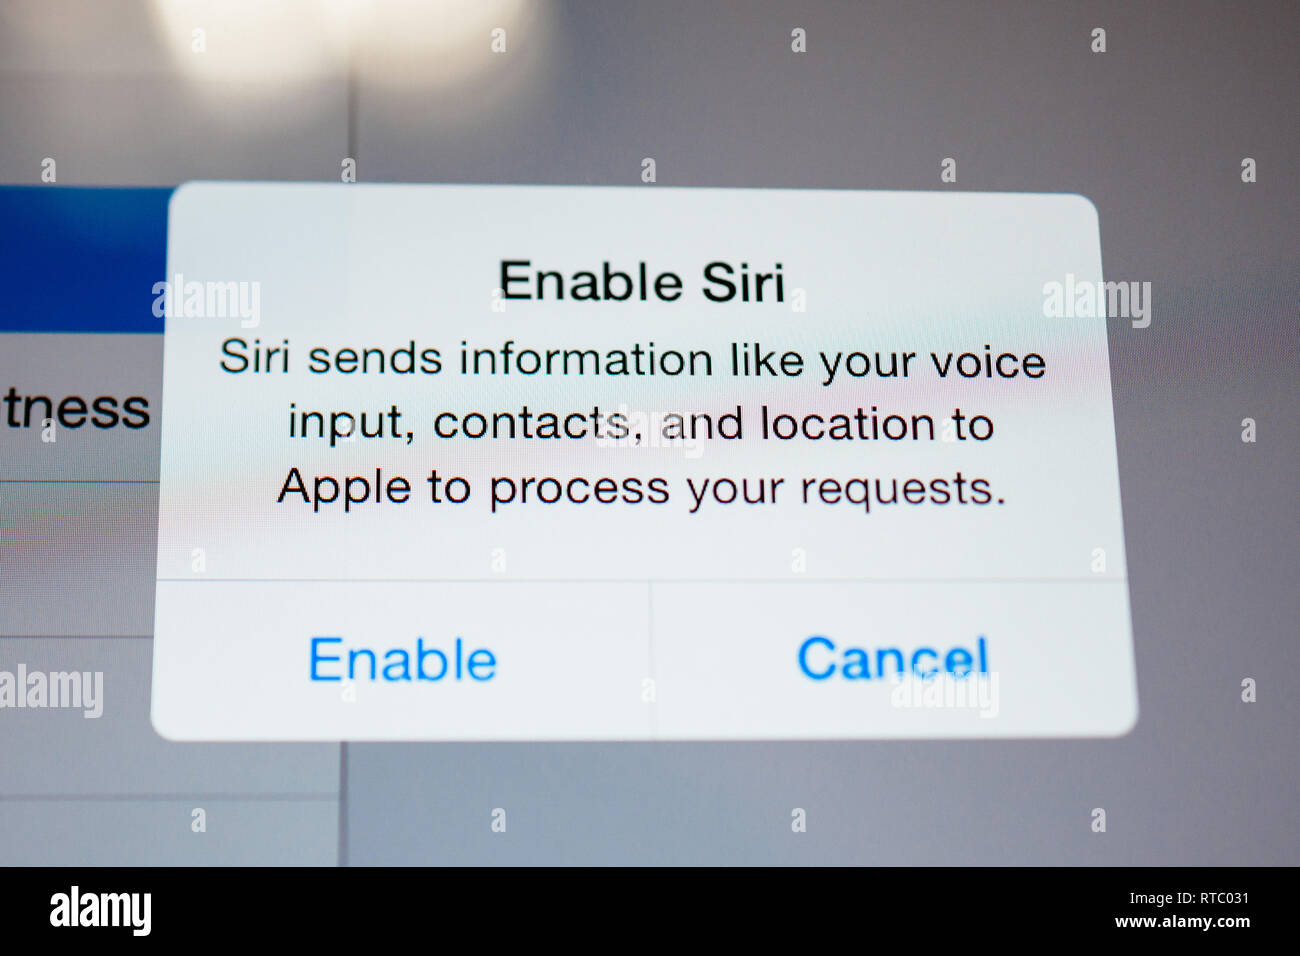 PARIS, FRANCE - SEP 18, 2014: Enable Siri personal voice